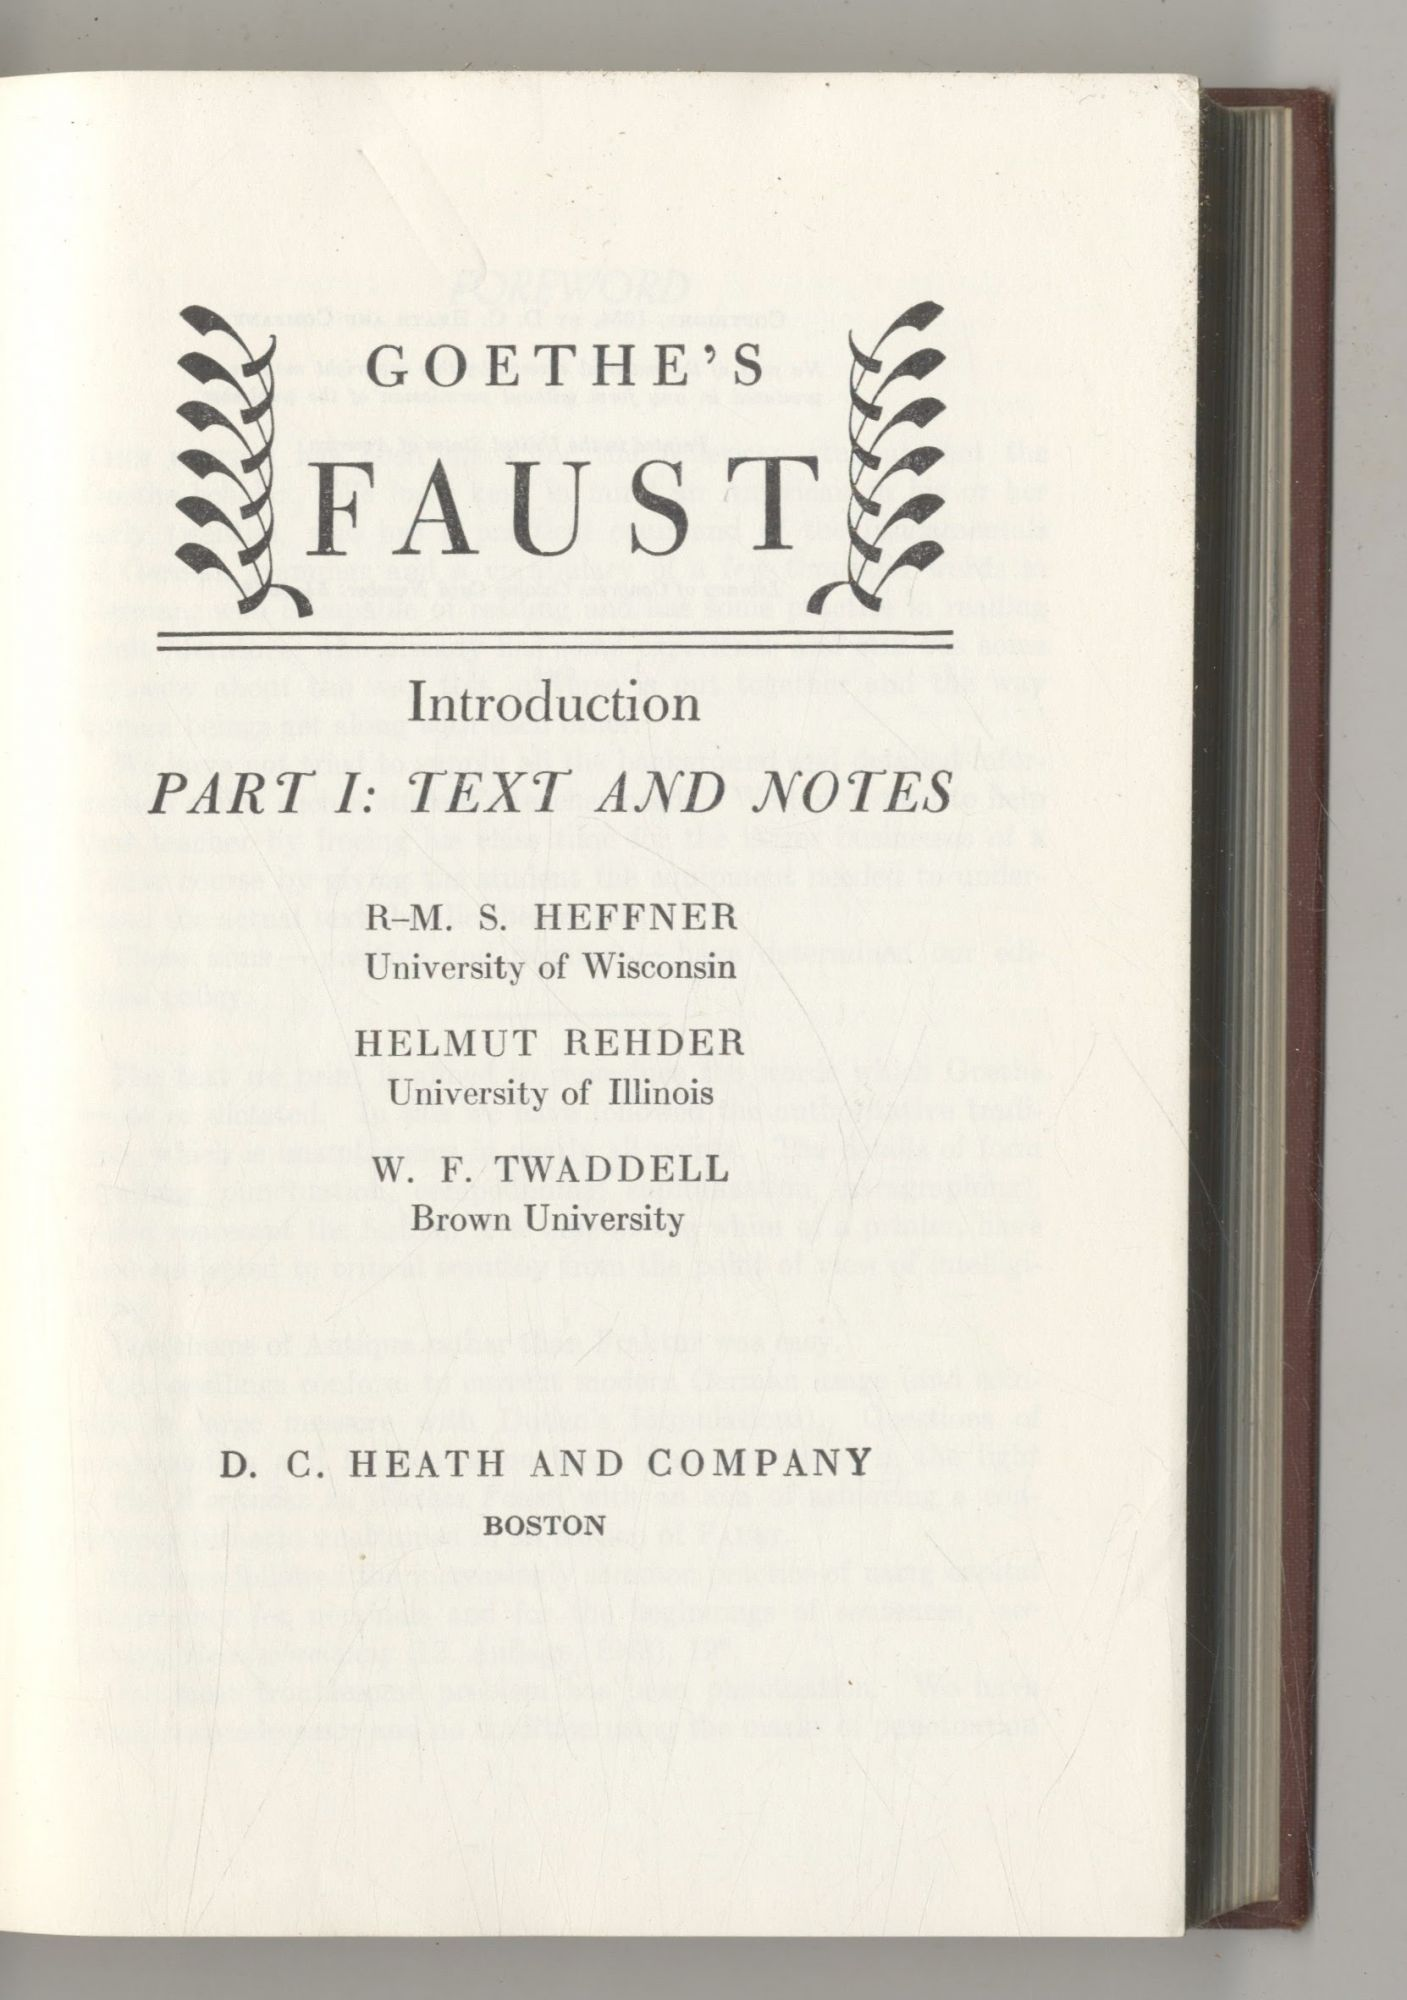 Goethe's Faust Introduction Part 1: Text And Notes. Helmut Rehder R-M. S. Heffner, W. F. Twaddell.